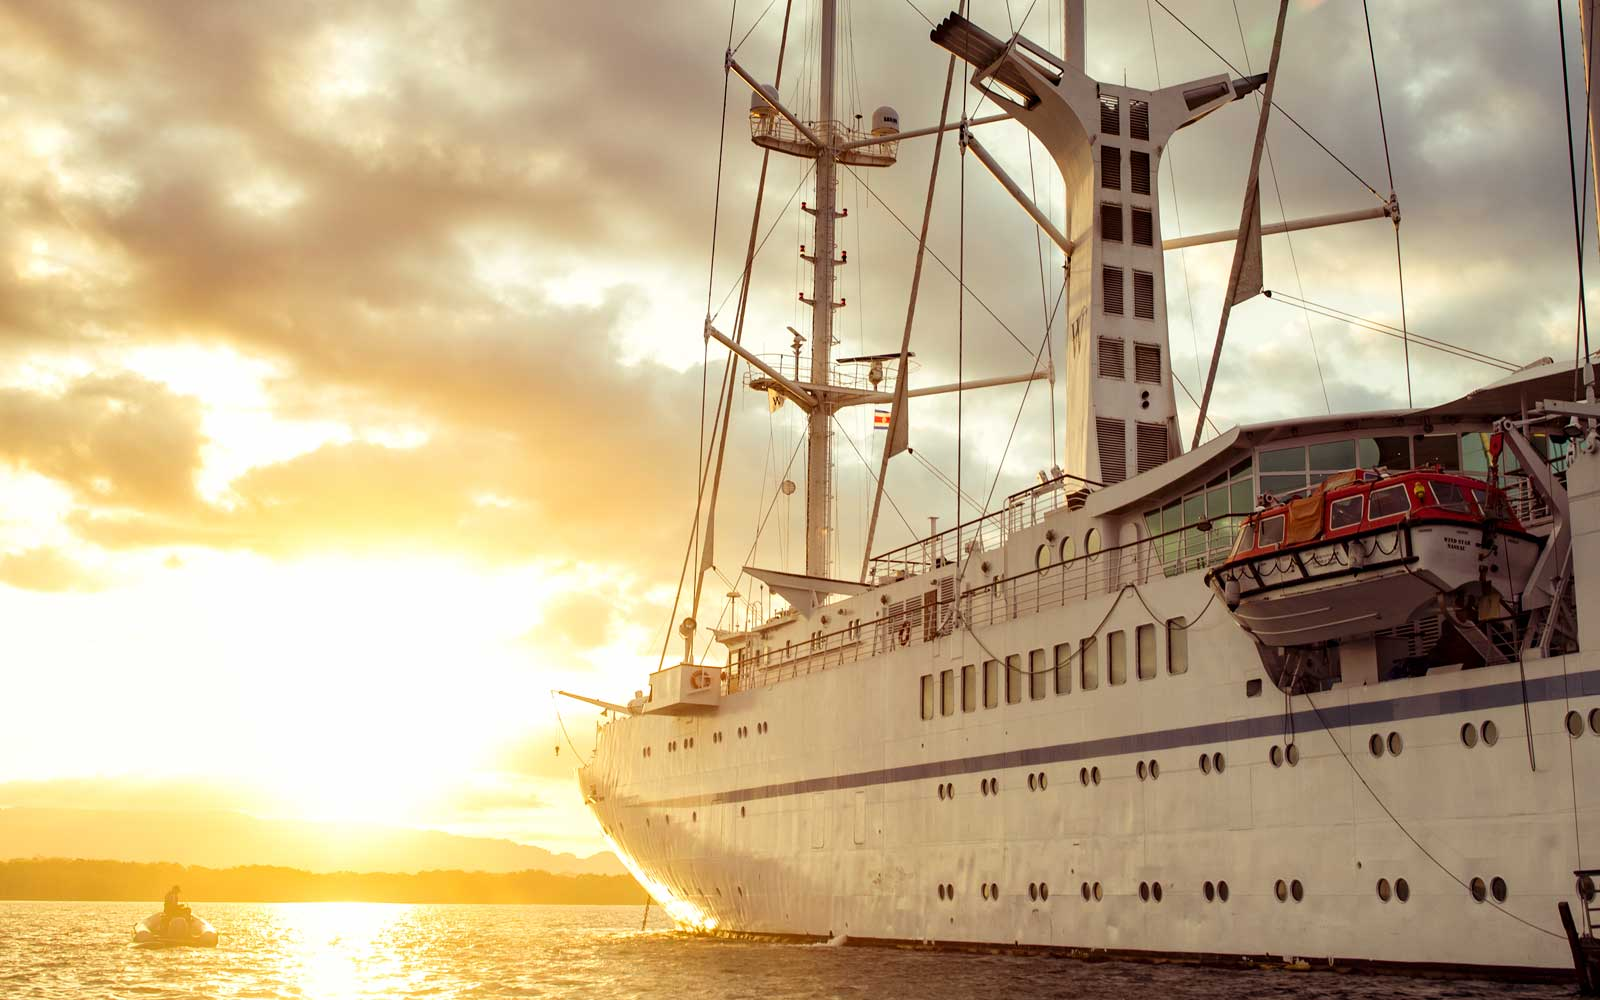 Adventures Abound On and Off the Windstar Cruise in Central America